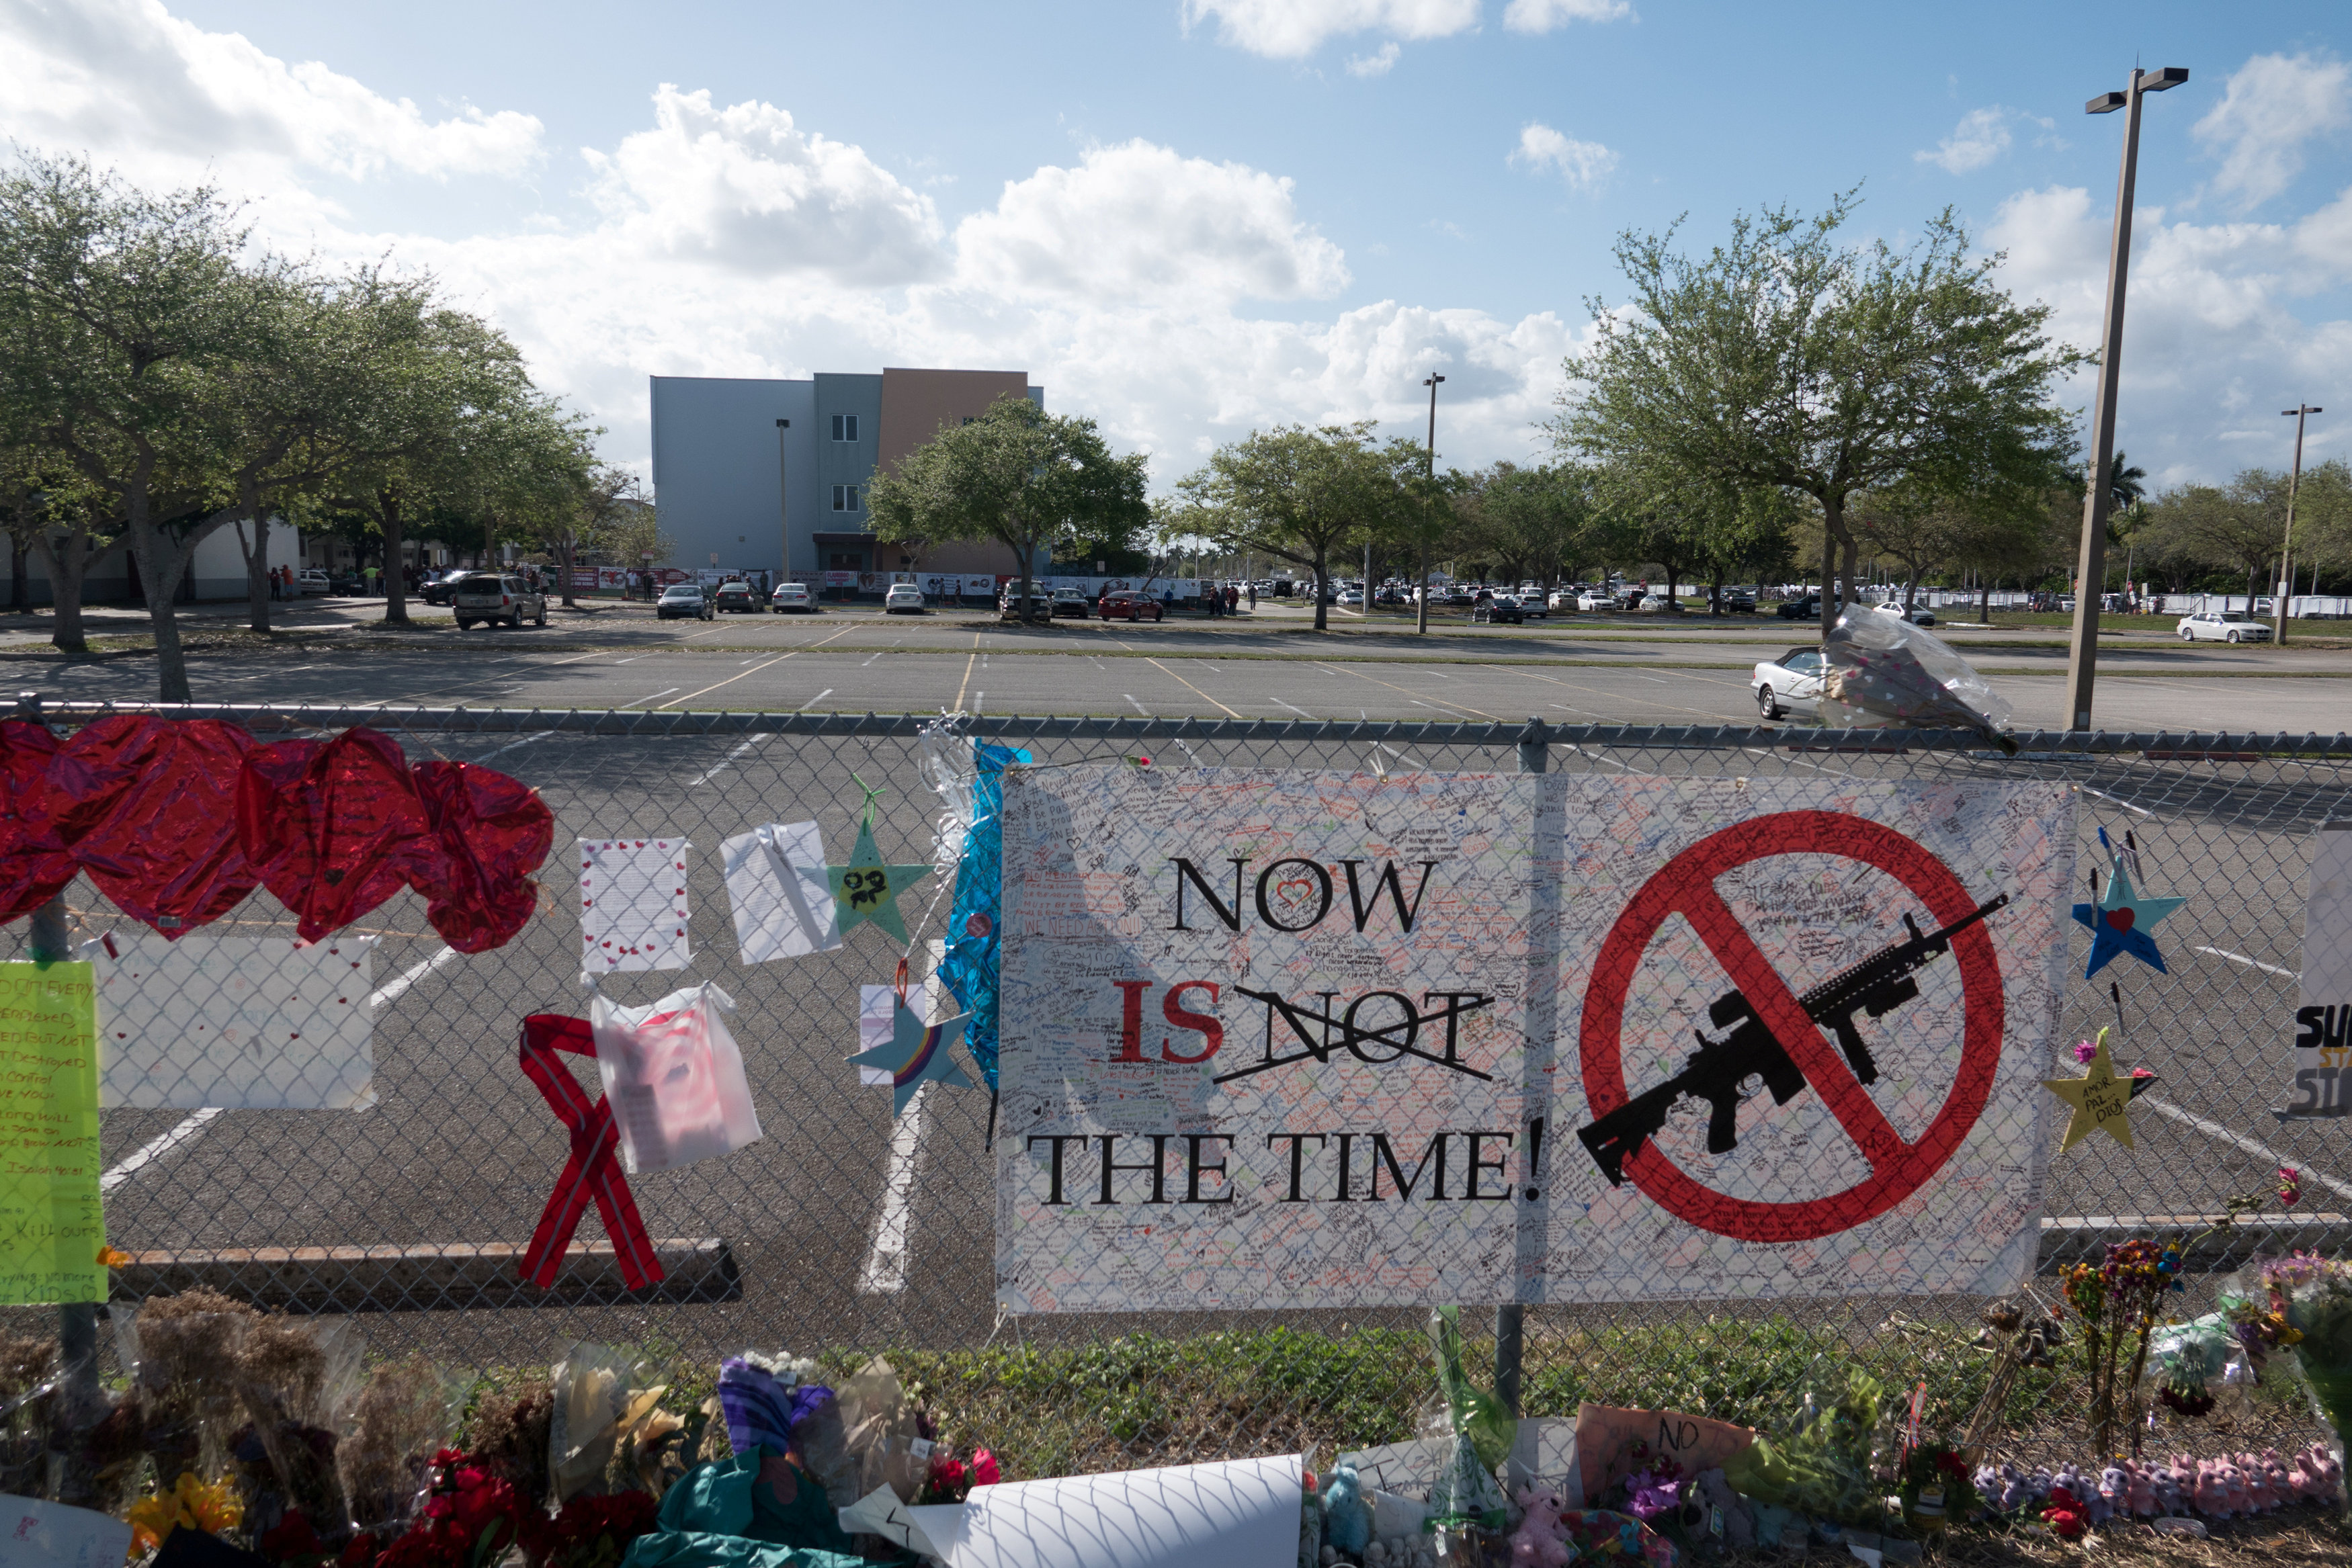 FILE PHOTO: Messages, posted on a fence, hang, as students and parents attend a voluntary campus orientation at the Marjory Stoneman Douglas High School, for the coming Wednesday's reopening, following last week's mass shooting in Parkland, Florida, U.S., February 25, 2018. REUTERS/Angel Valentin/File photo